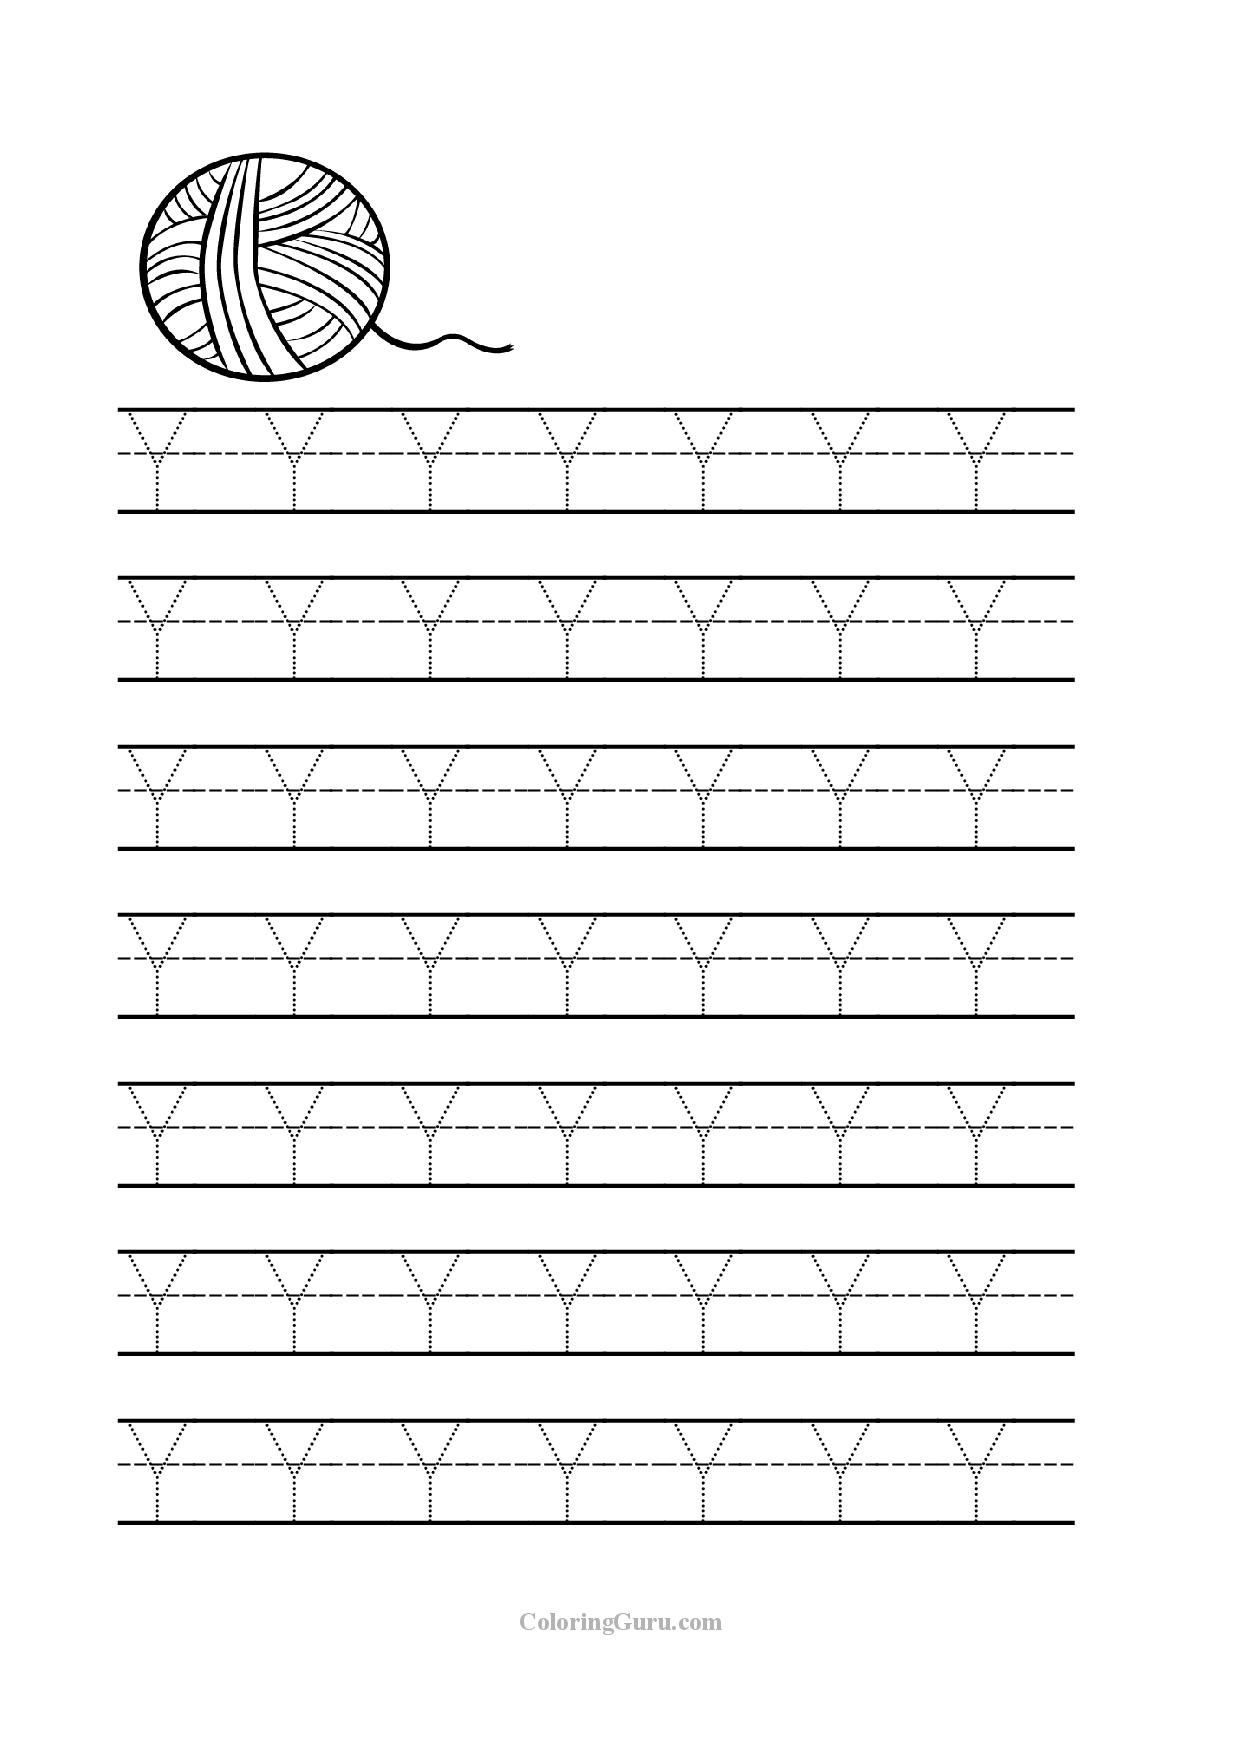 Letter Y Preschool Worksheets pertaining to Letter Y Tracing Page